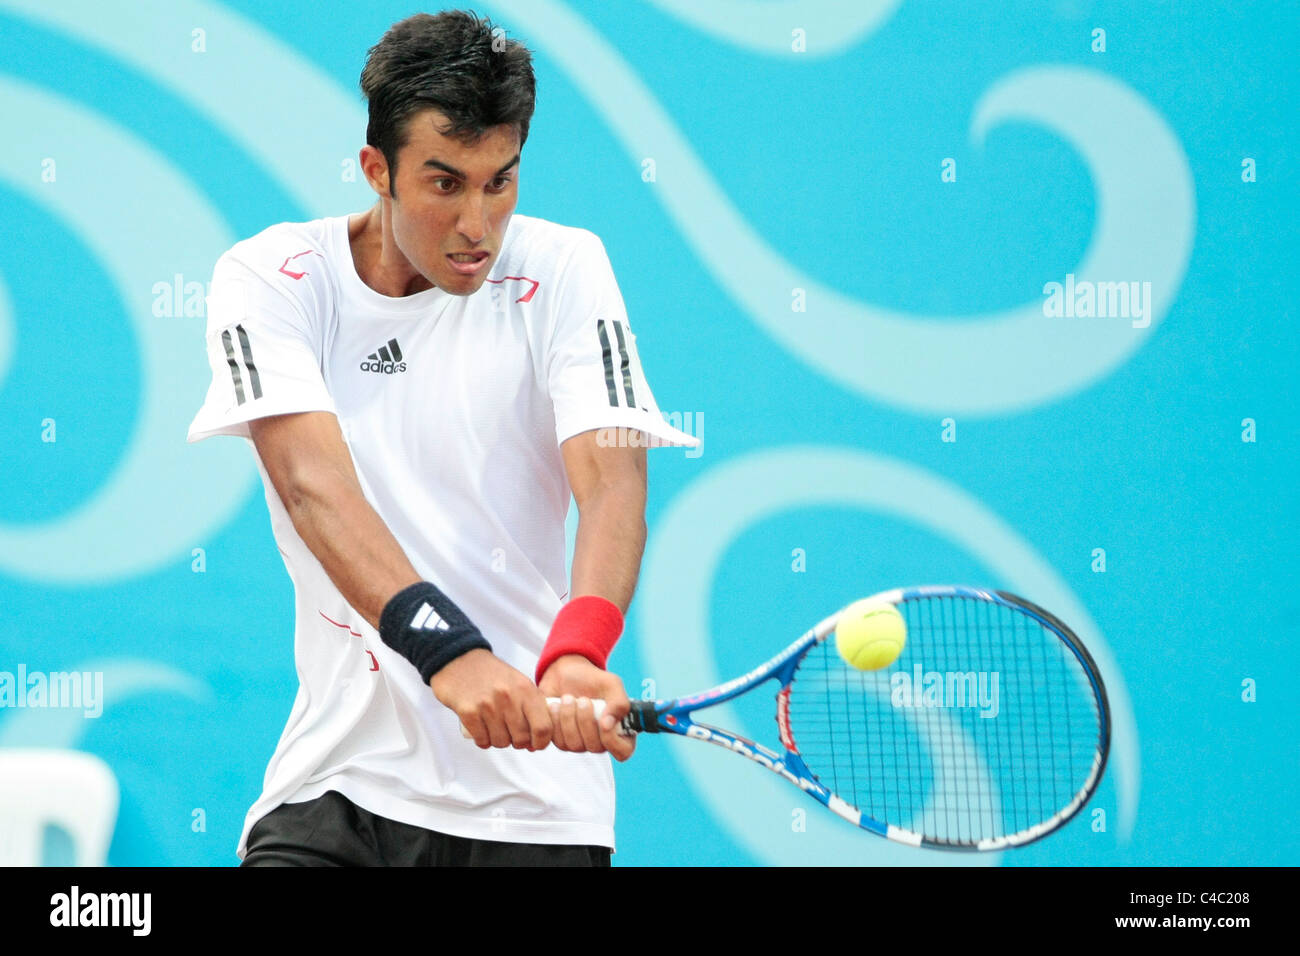 Yuki Bhambri of India competing in the Mens' Singles Finals. - Stock Image